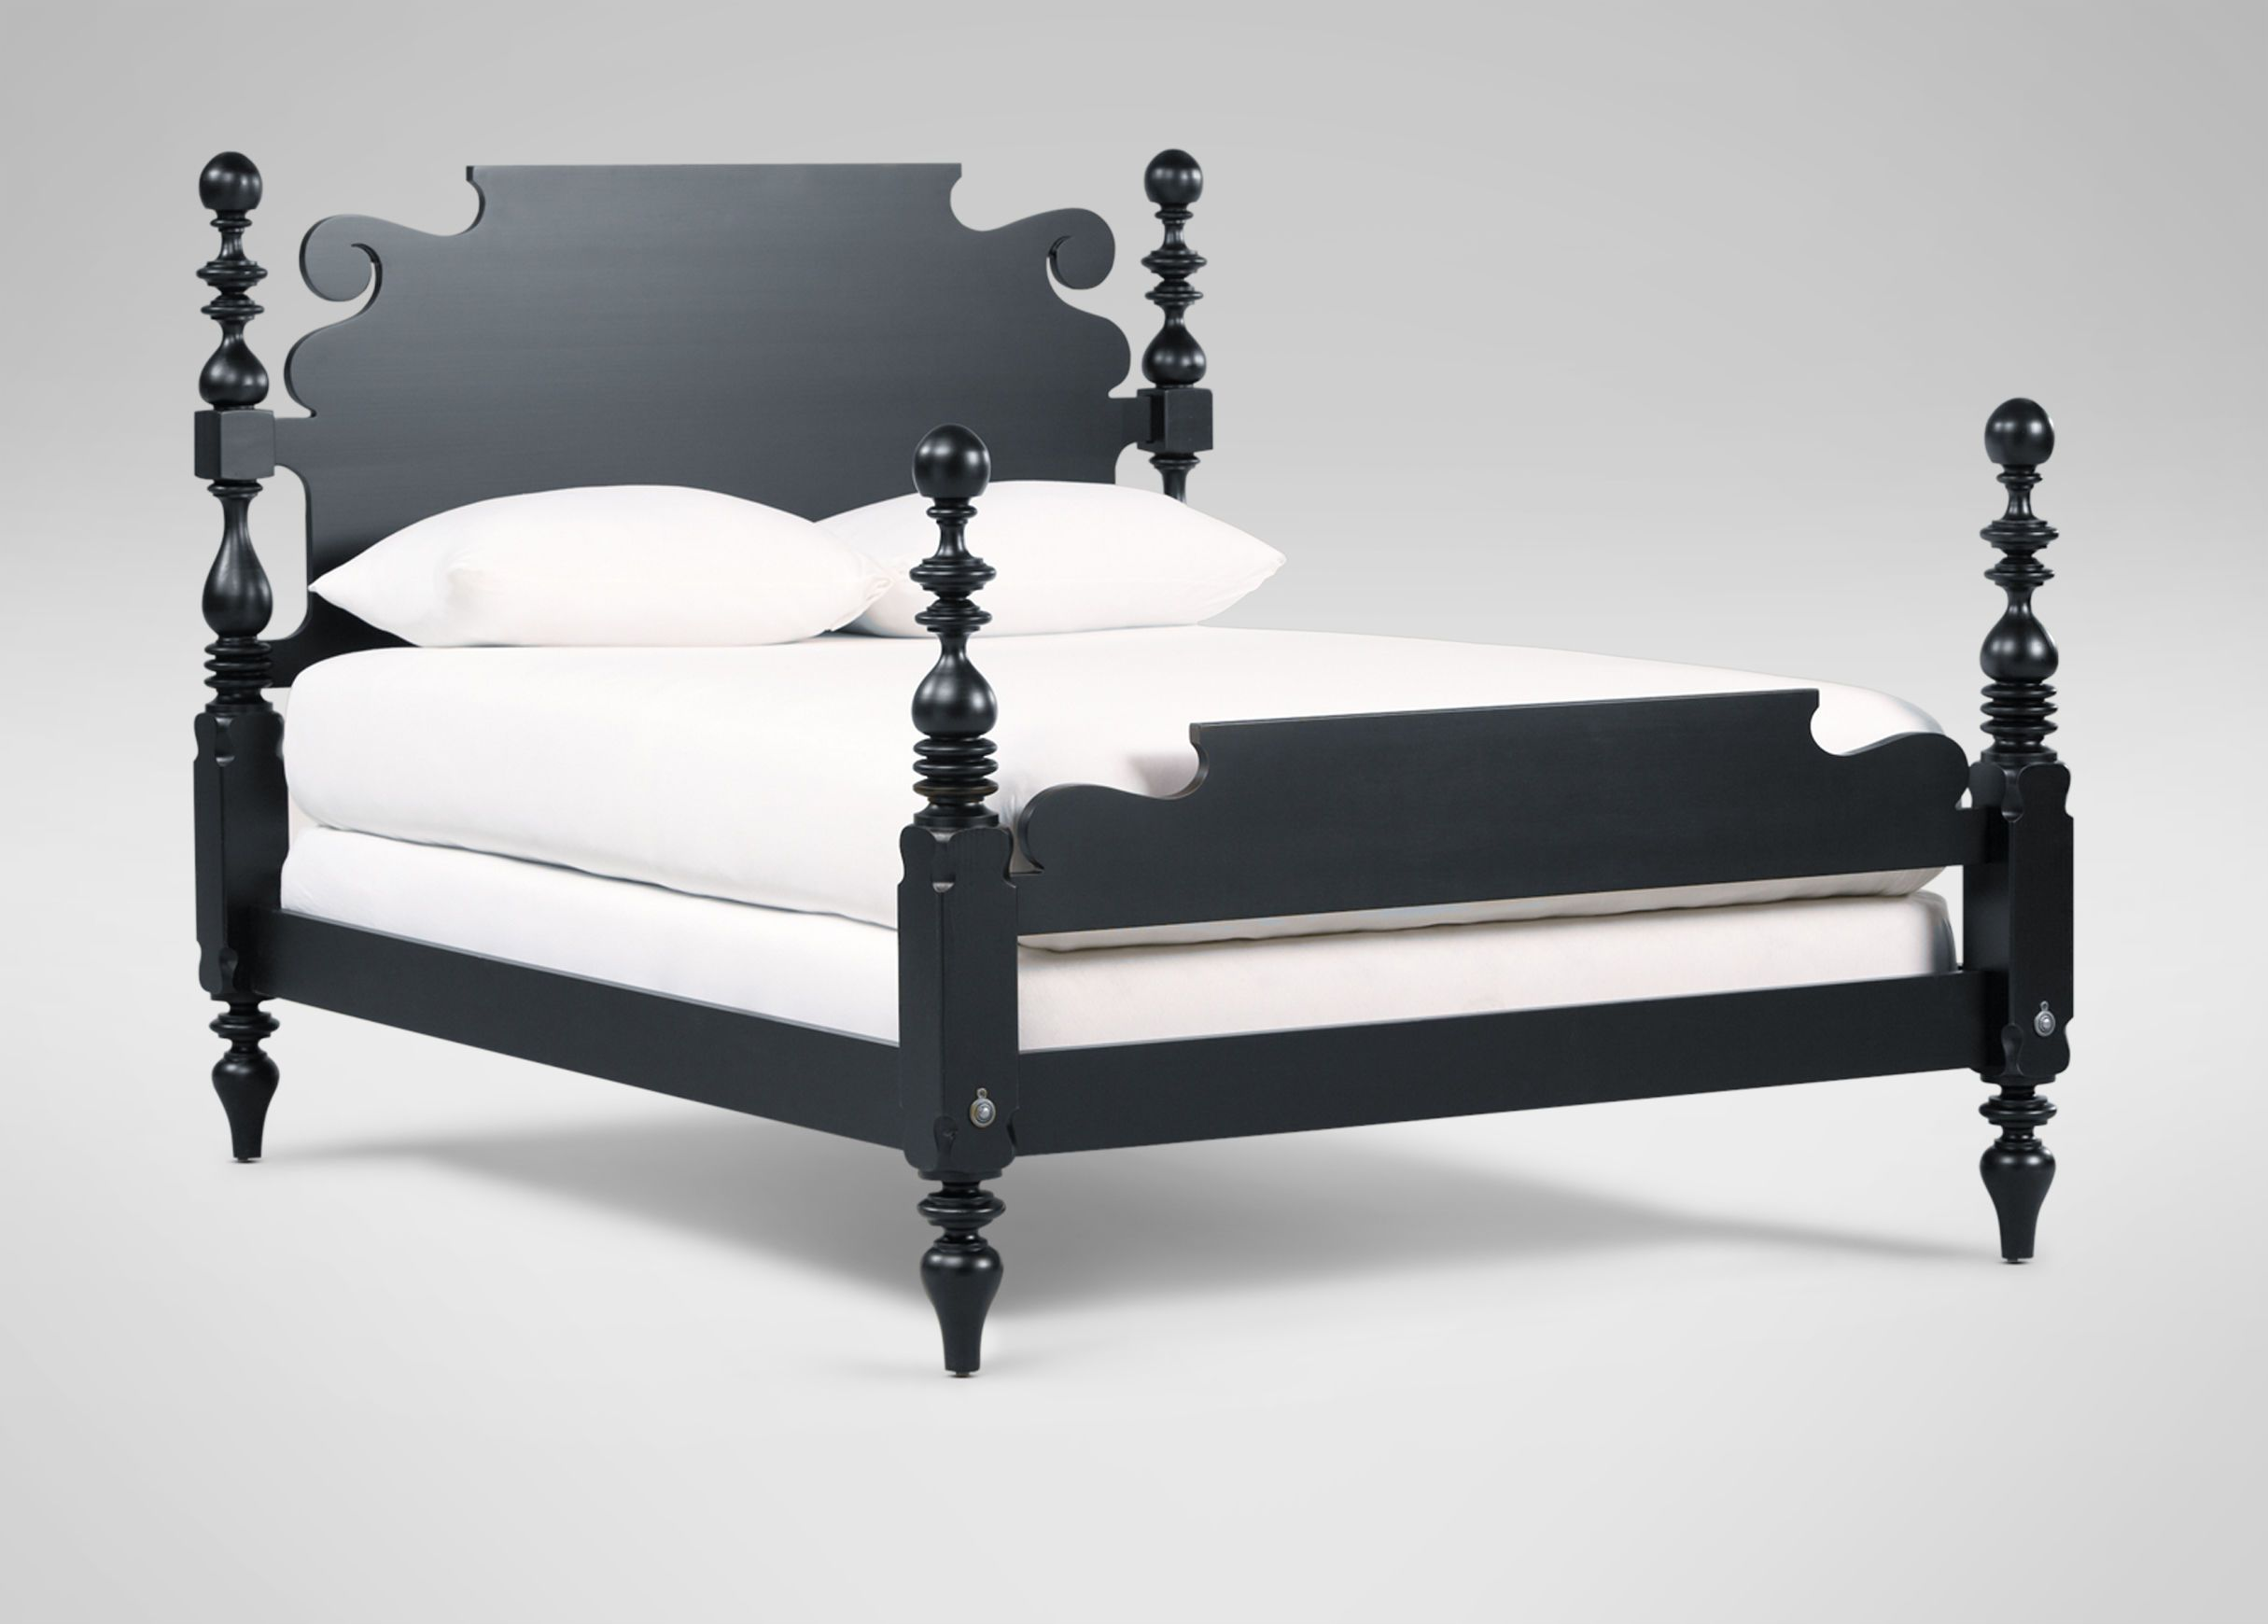 Quincy Bed - Ethan Allen; Cannonball bed, matte black